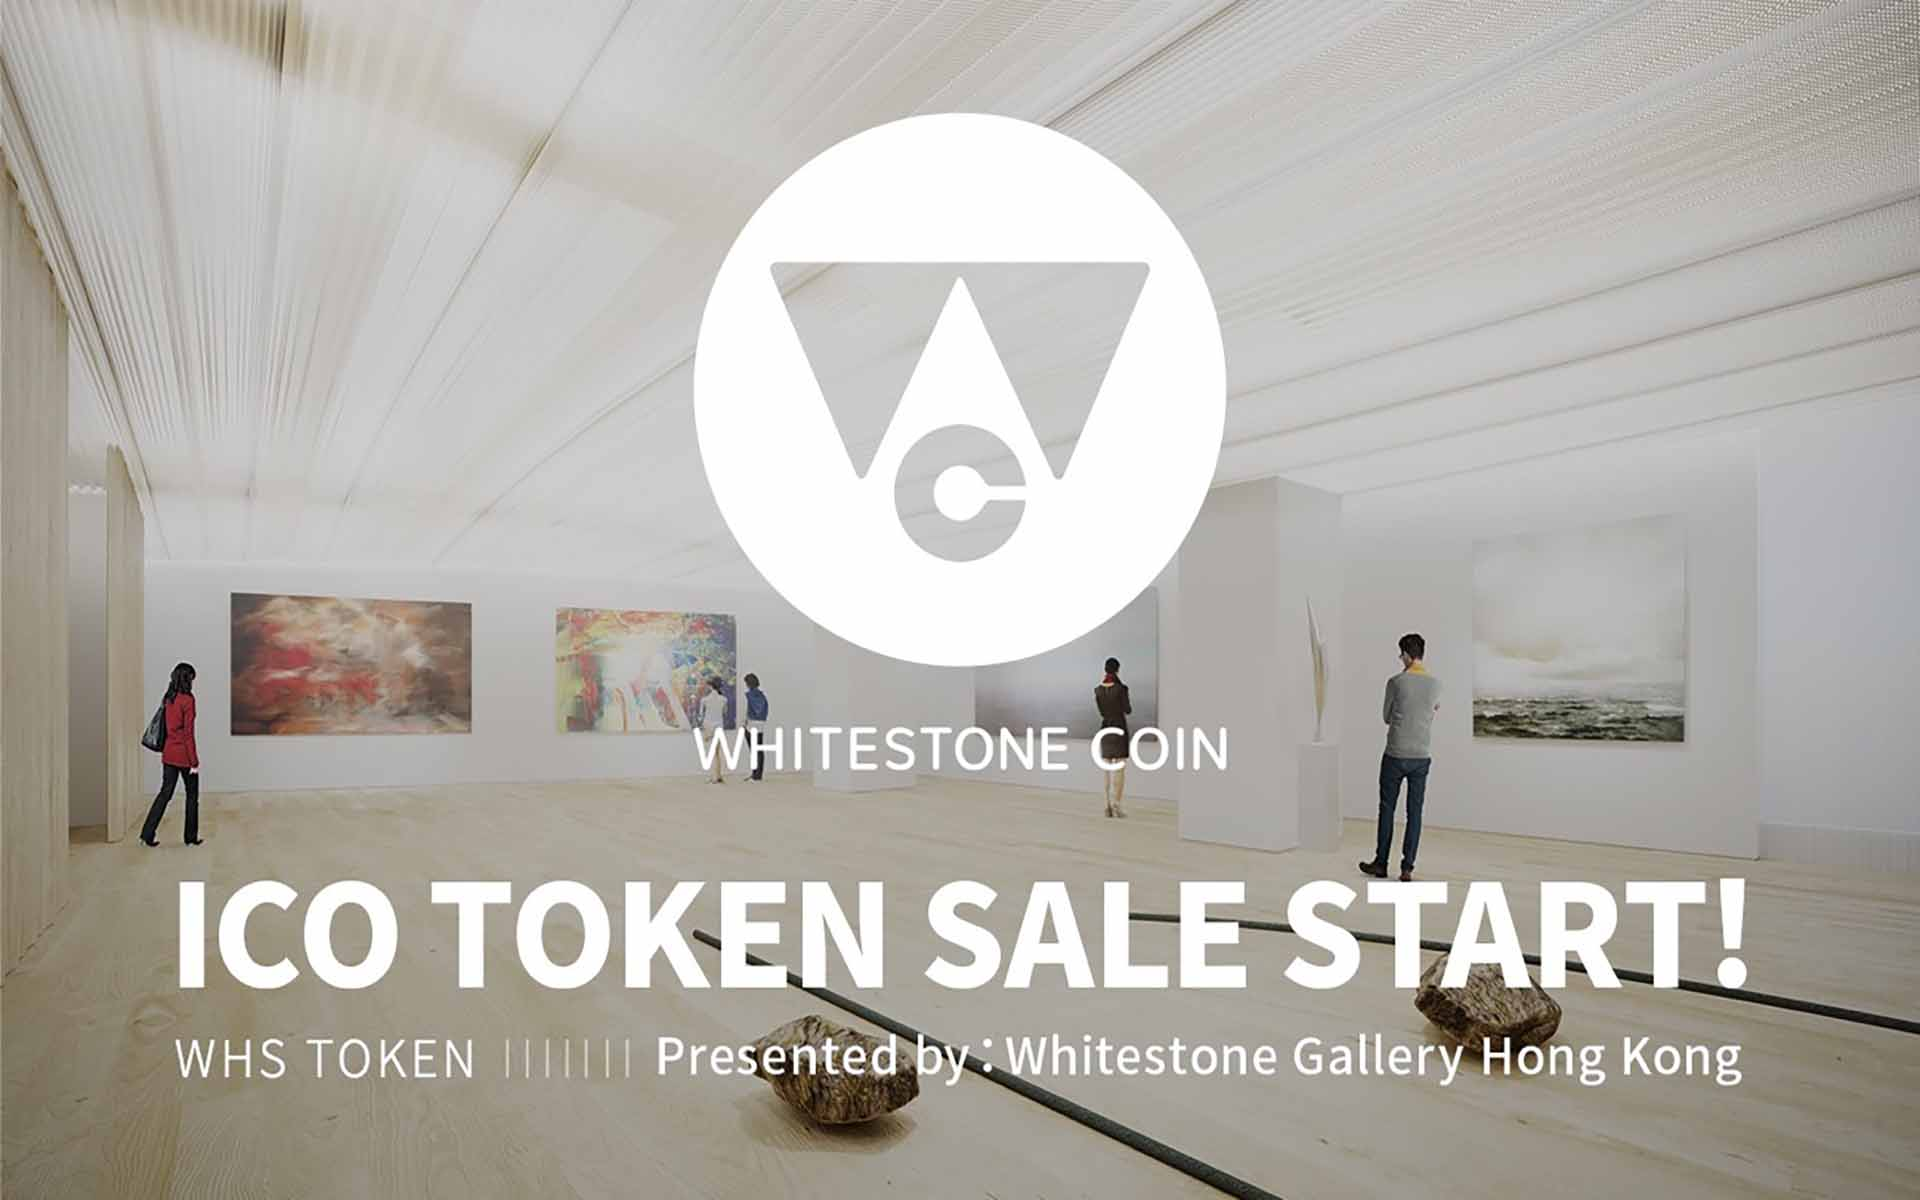 Whitestone Gallery Hong Kong Conducting ICO for Developing Art Trading Platform Based on Blockchain